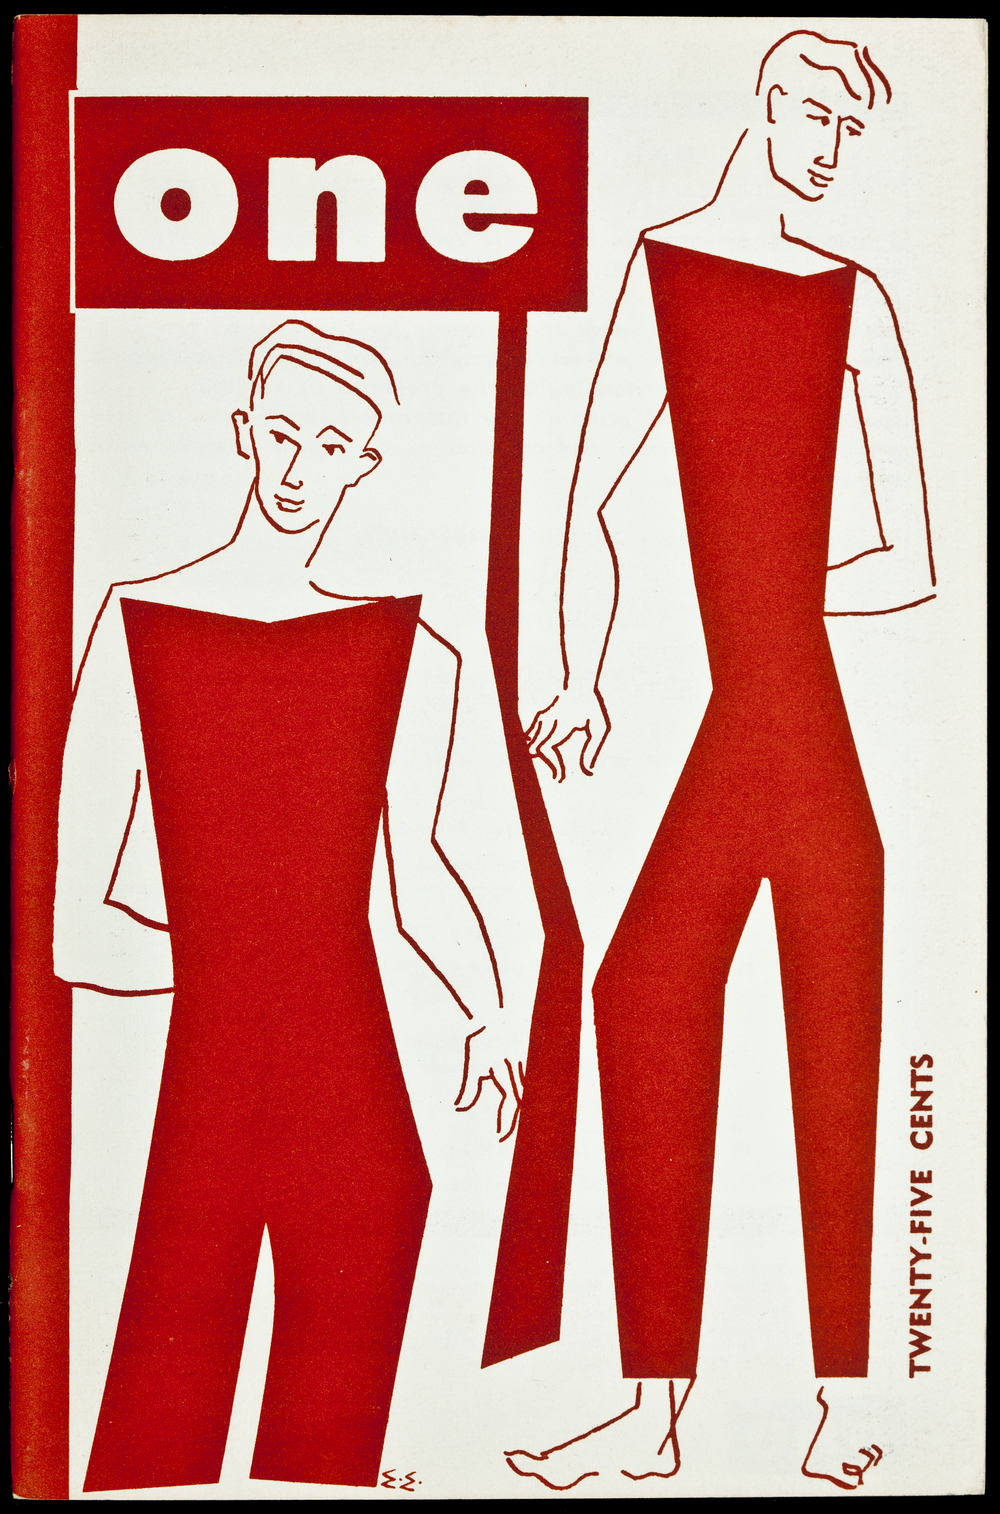 The cover of ONE Magazine's July 1955 issue, drawn by the publication's primary illustrator Joan Corbin, better known by her pseudonym Eve Elloree. Her girlfriend, Irma Wolf, also known as Ann Carll Reid, was ONE's chief editor from 1954 until 1957. Courtesy of the ONE Archives at the USC Libraries.